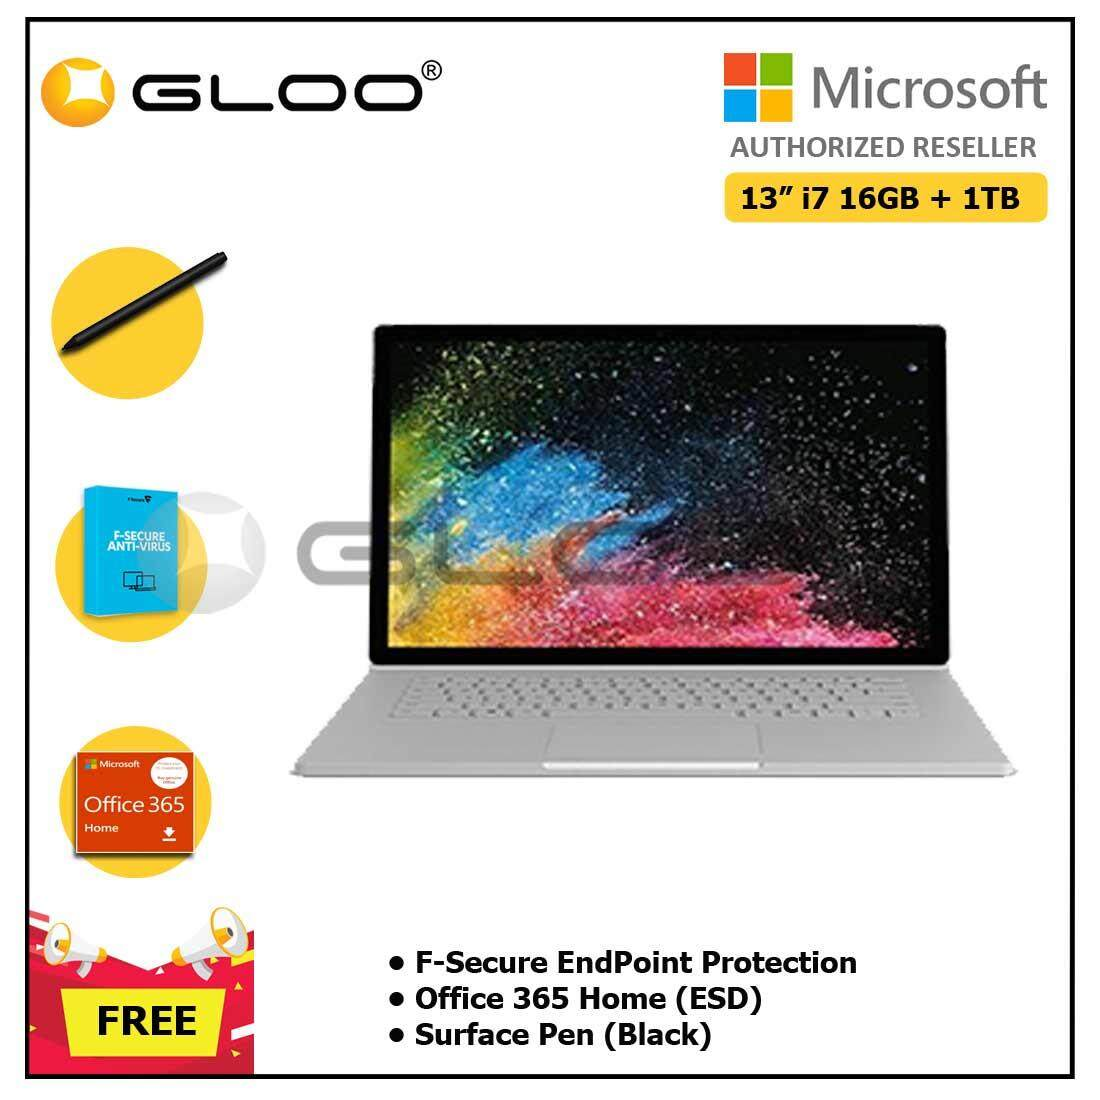 """Microsoft Surface Book 2 13"""" Core i7/16GB RAM - 1TB + F-Secure EndPoint Protection + Office 365 Home ESD + Pen Black"""